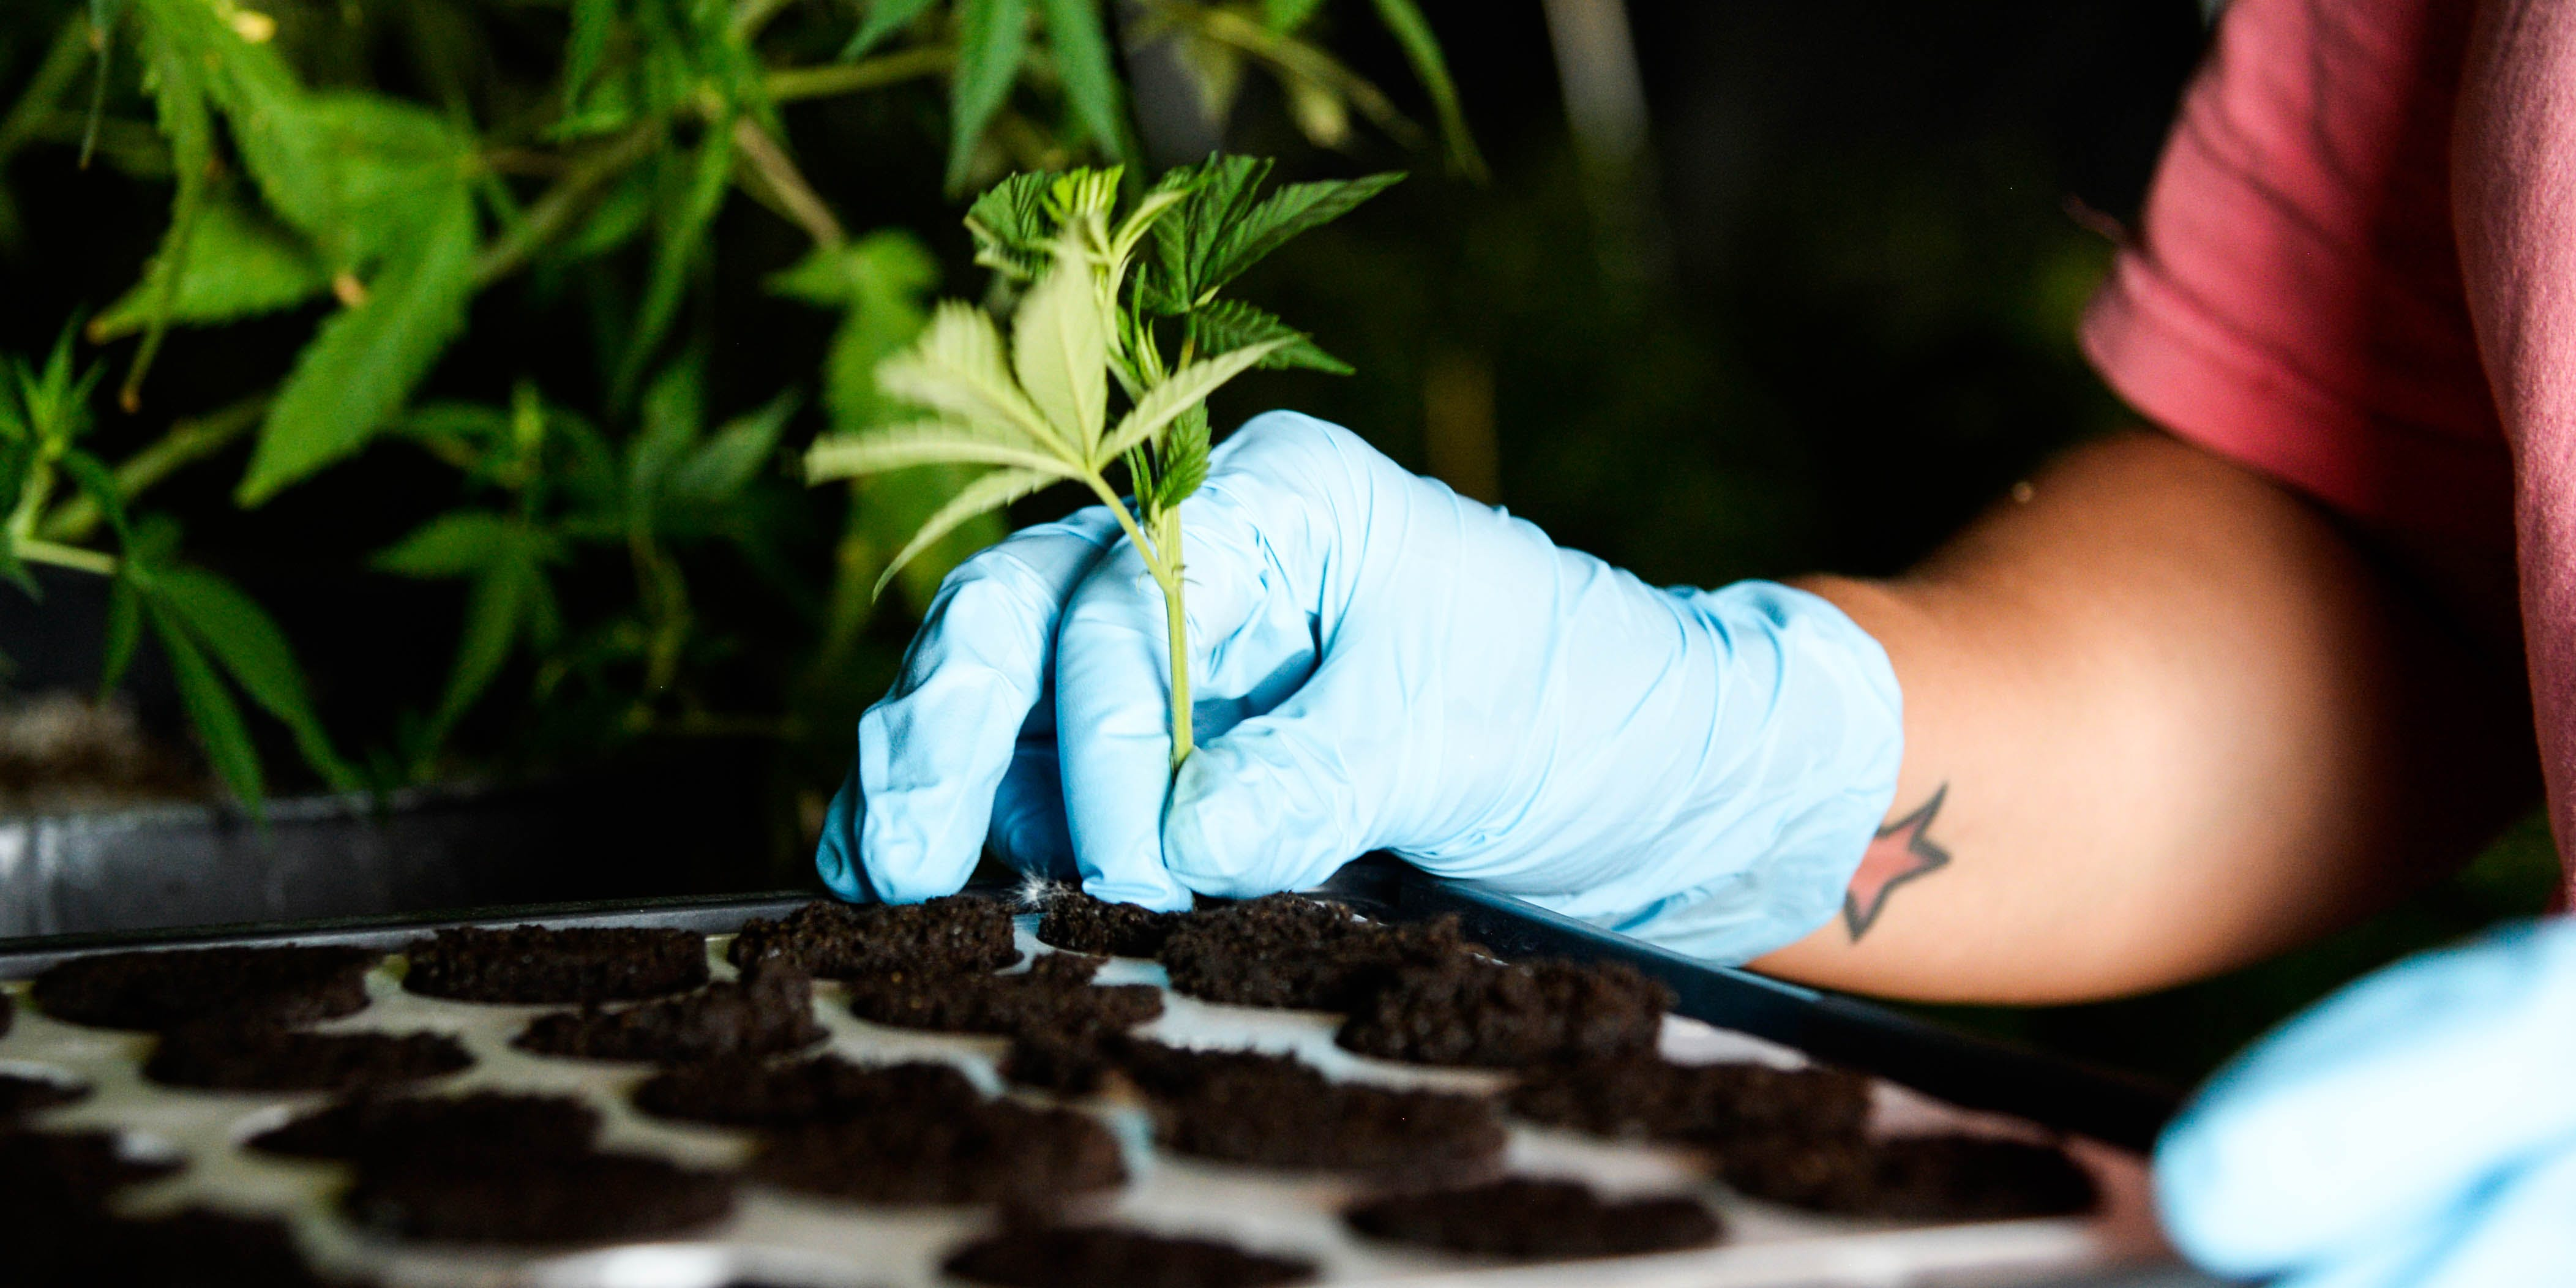 Someone plans a clone cannabis plant that will be used to produce hemp for CBD. California's recent ban on hemp-derived CBD leads to more confusion than clarification.